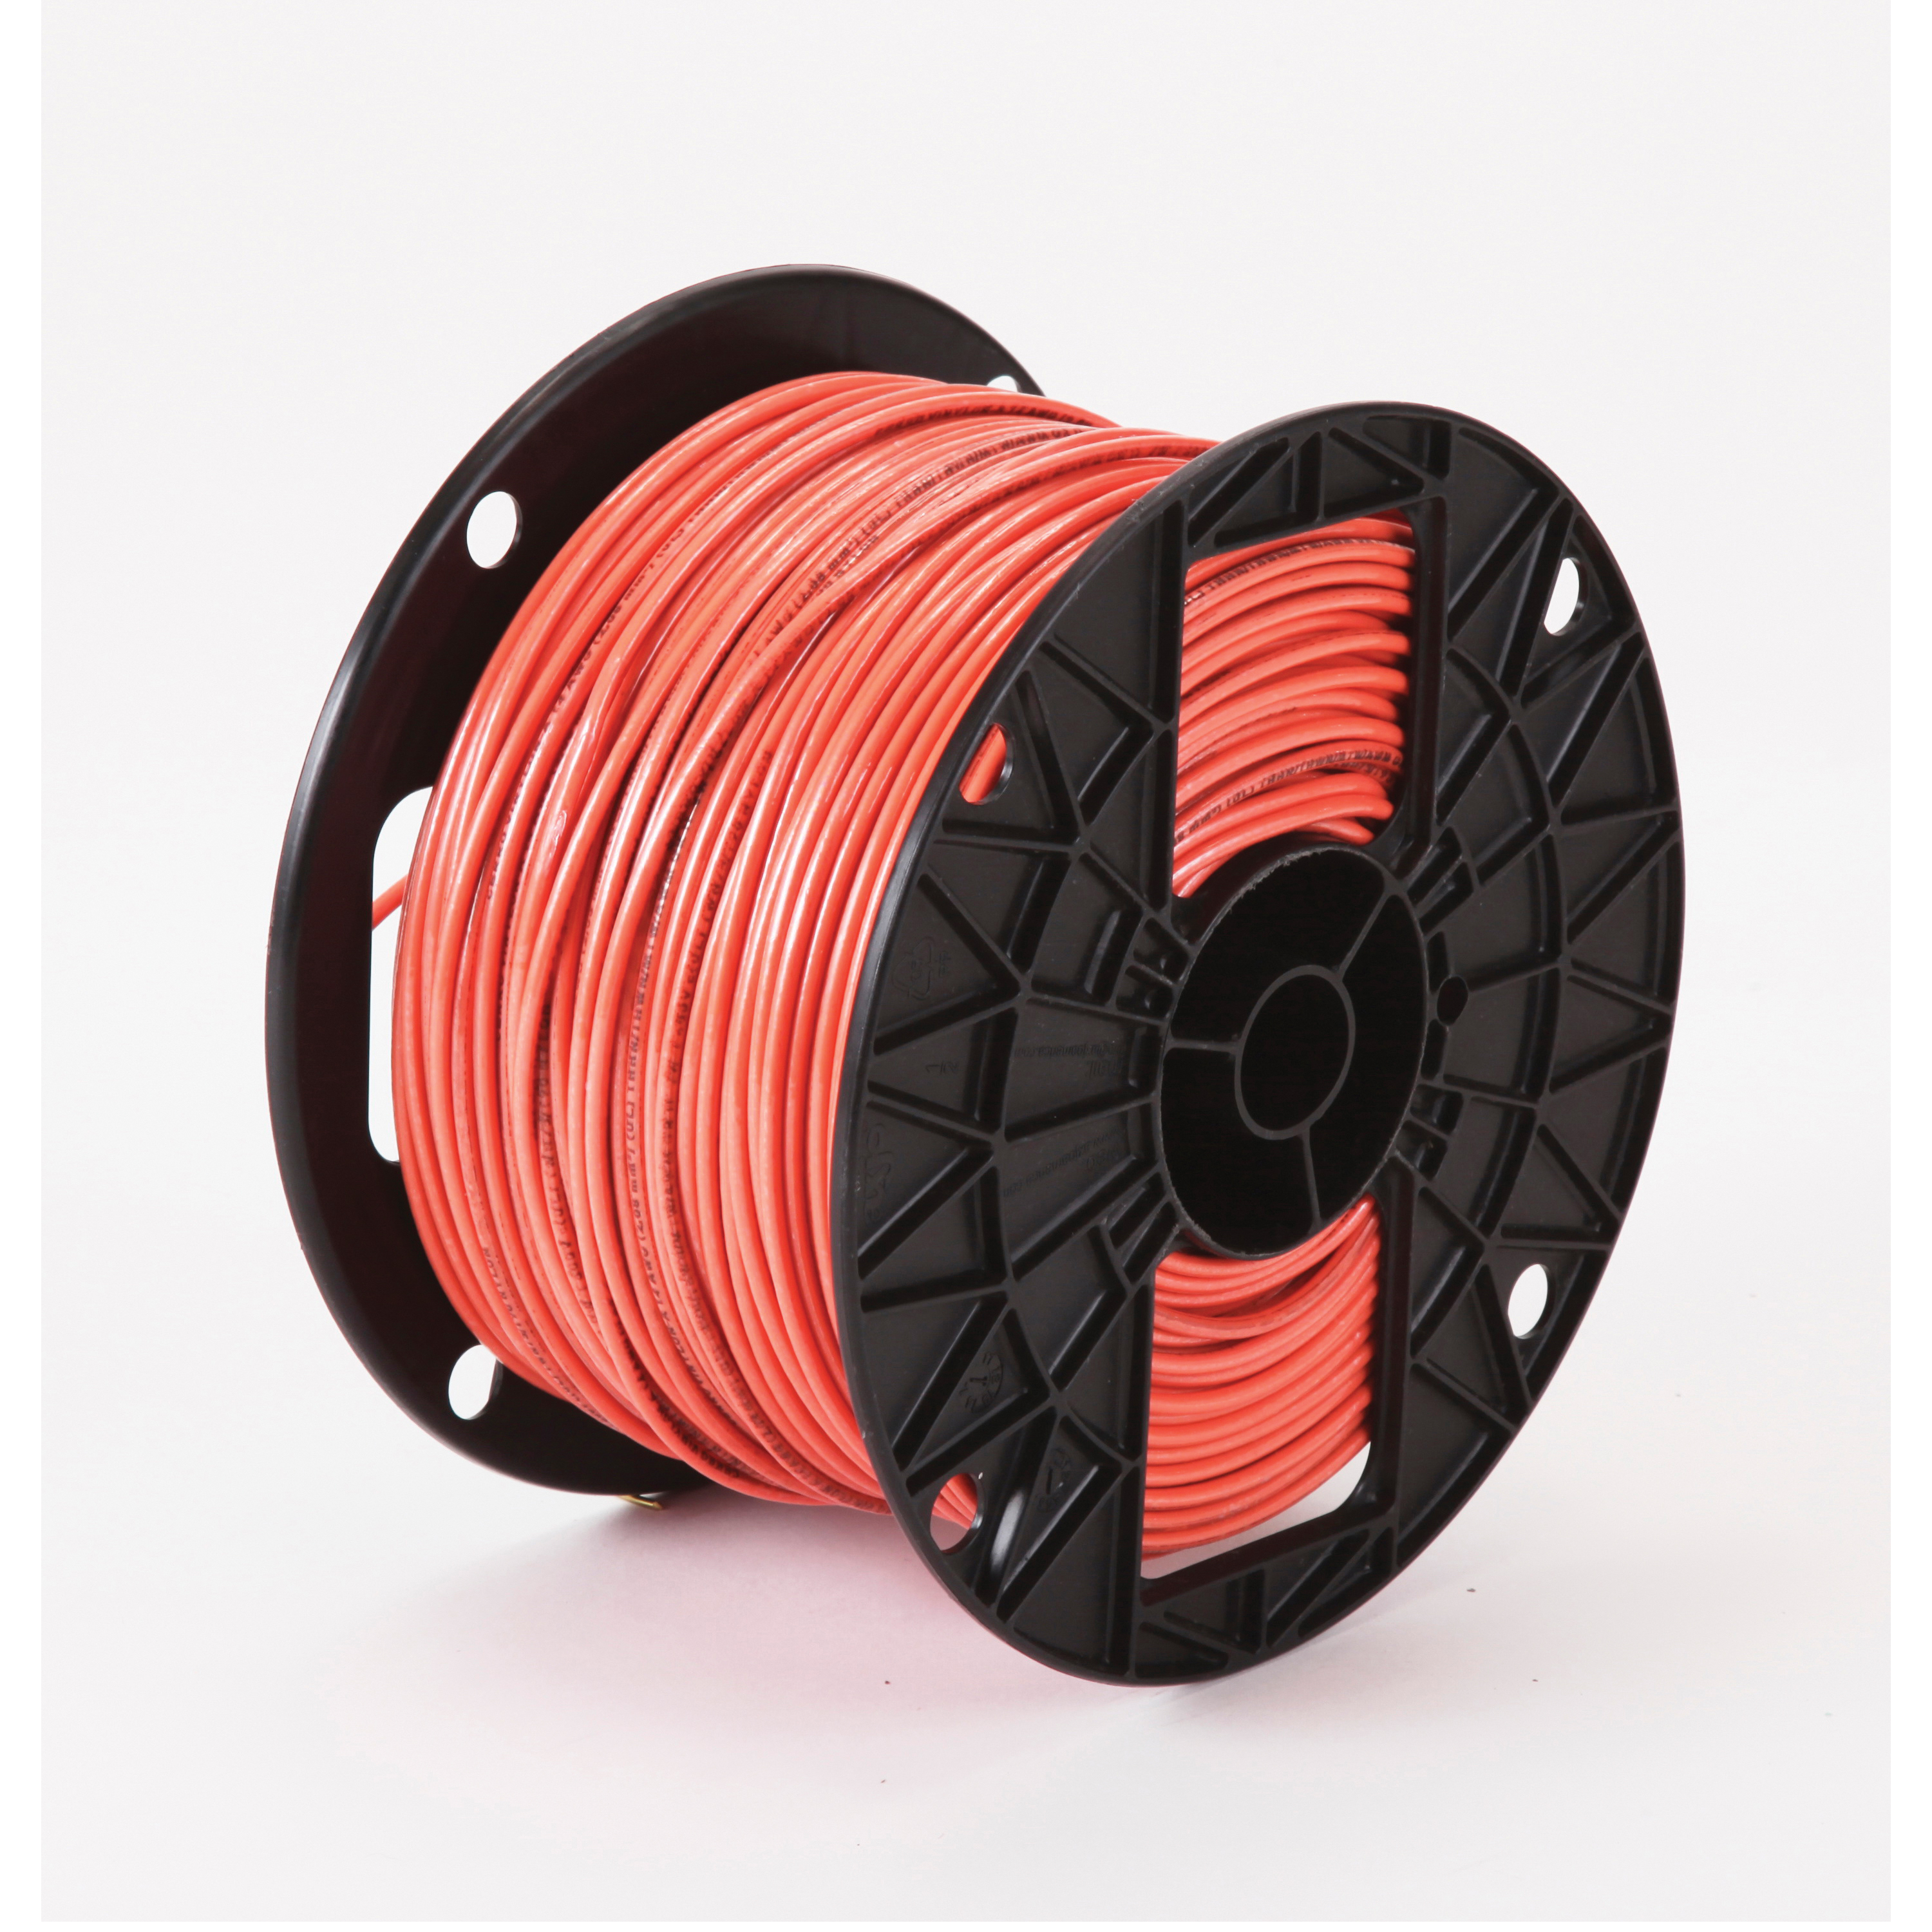 Building Wire Thhn Stranded Steiner Electric Company Home Wiring Cable Manufacturers Spec Sheets